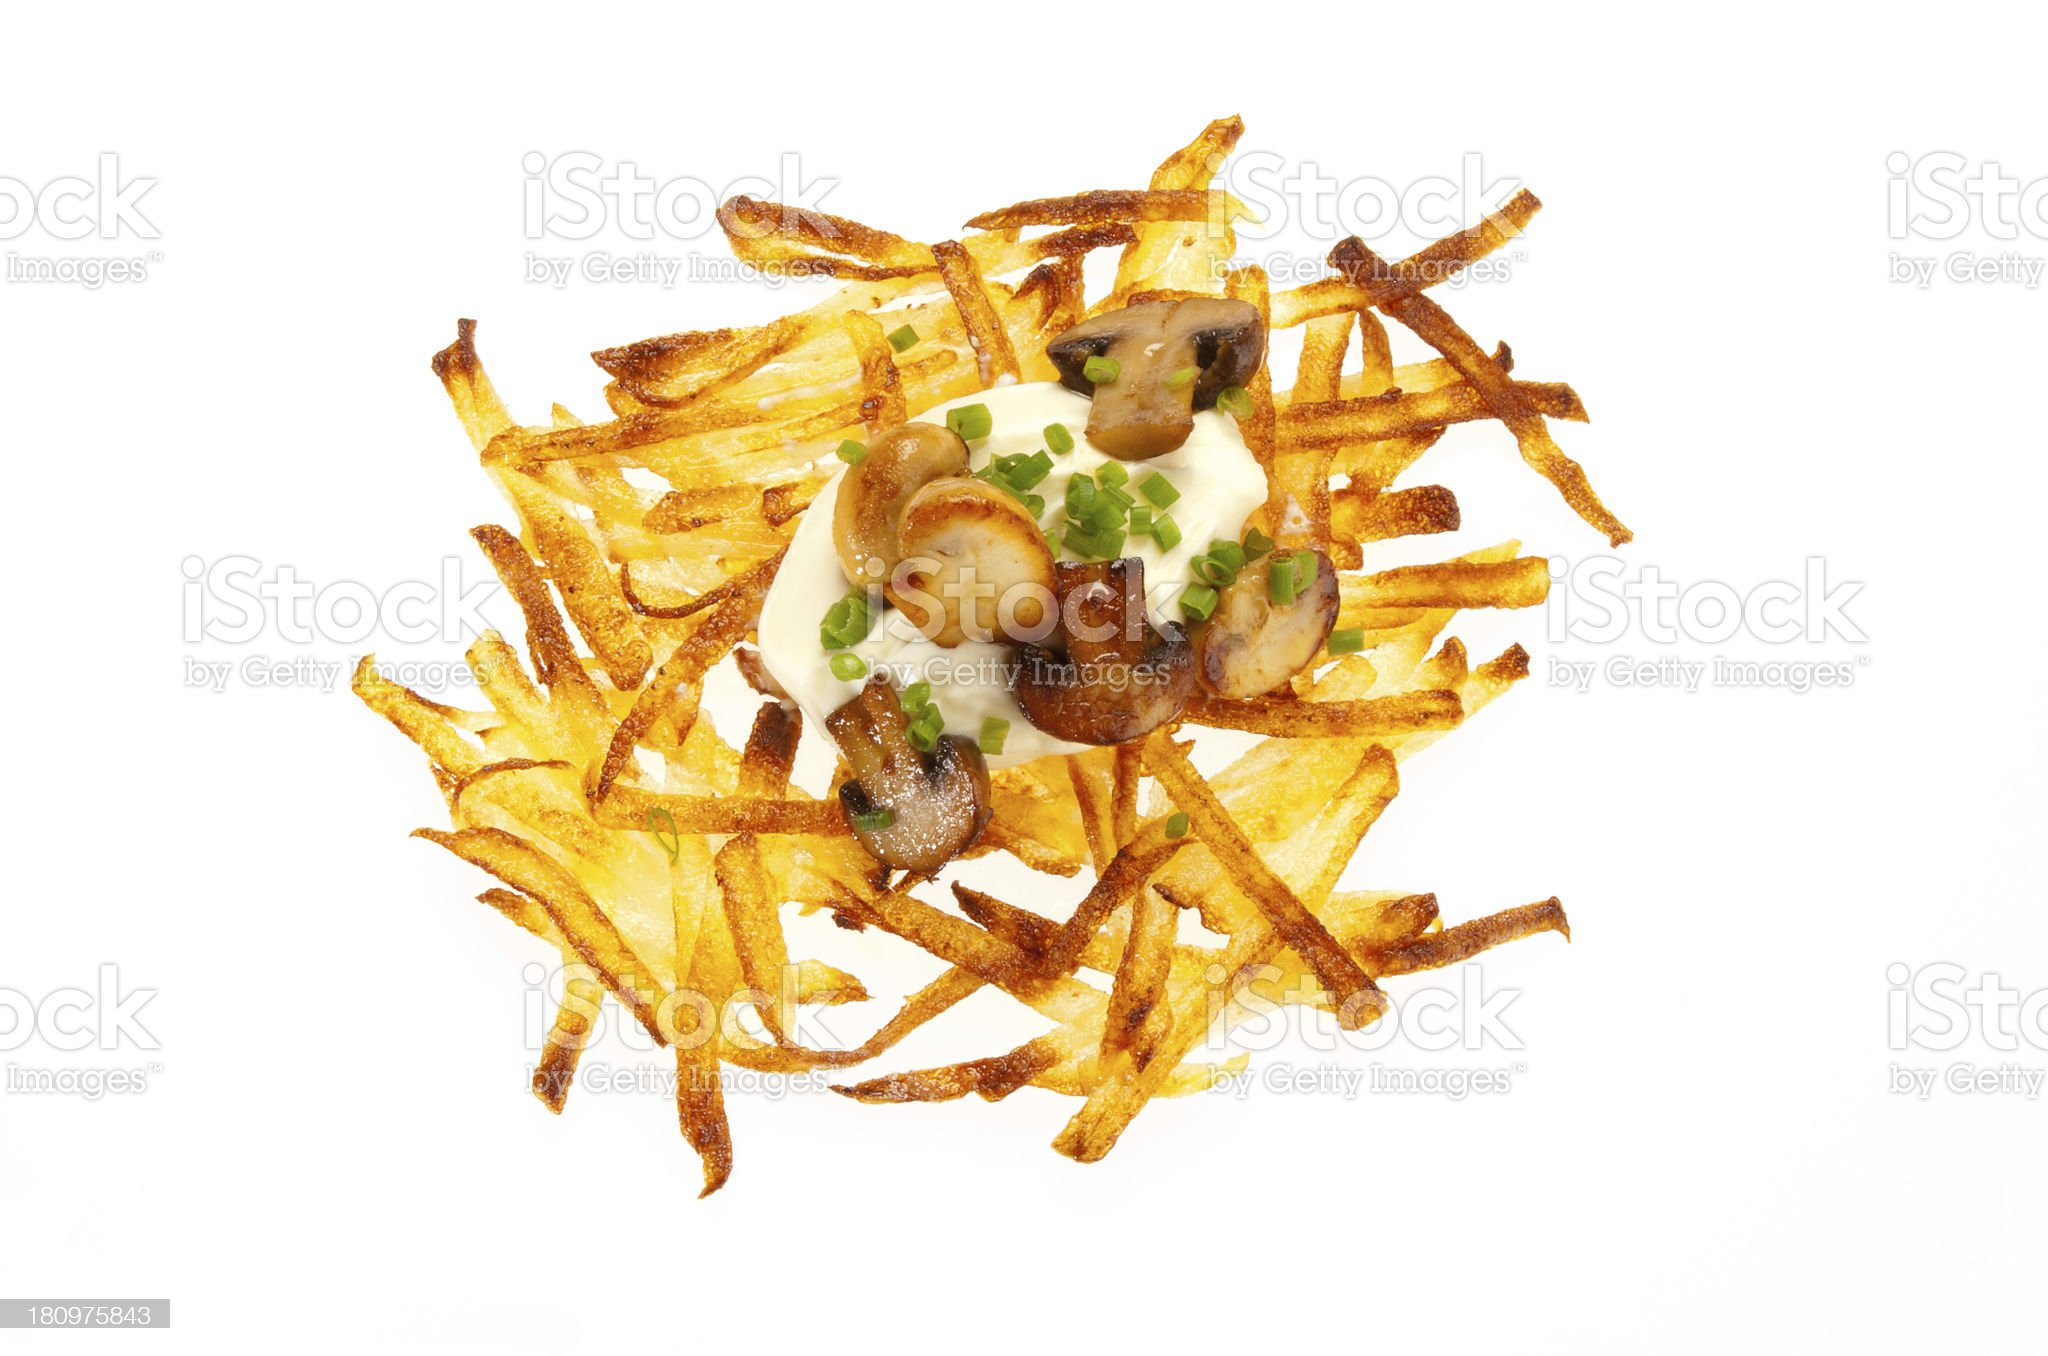 Hash browns with sour cream and mushrooms royalty-free stock photo